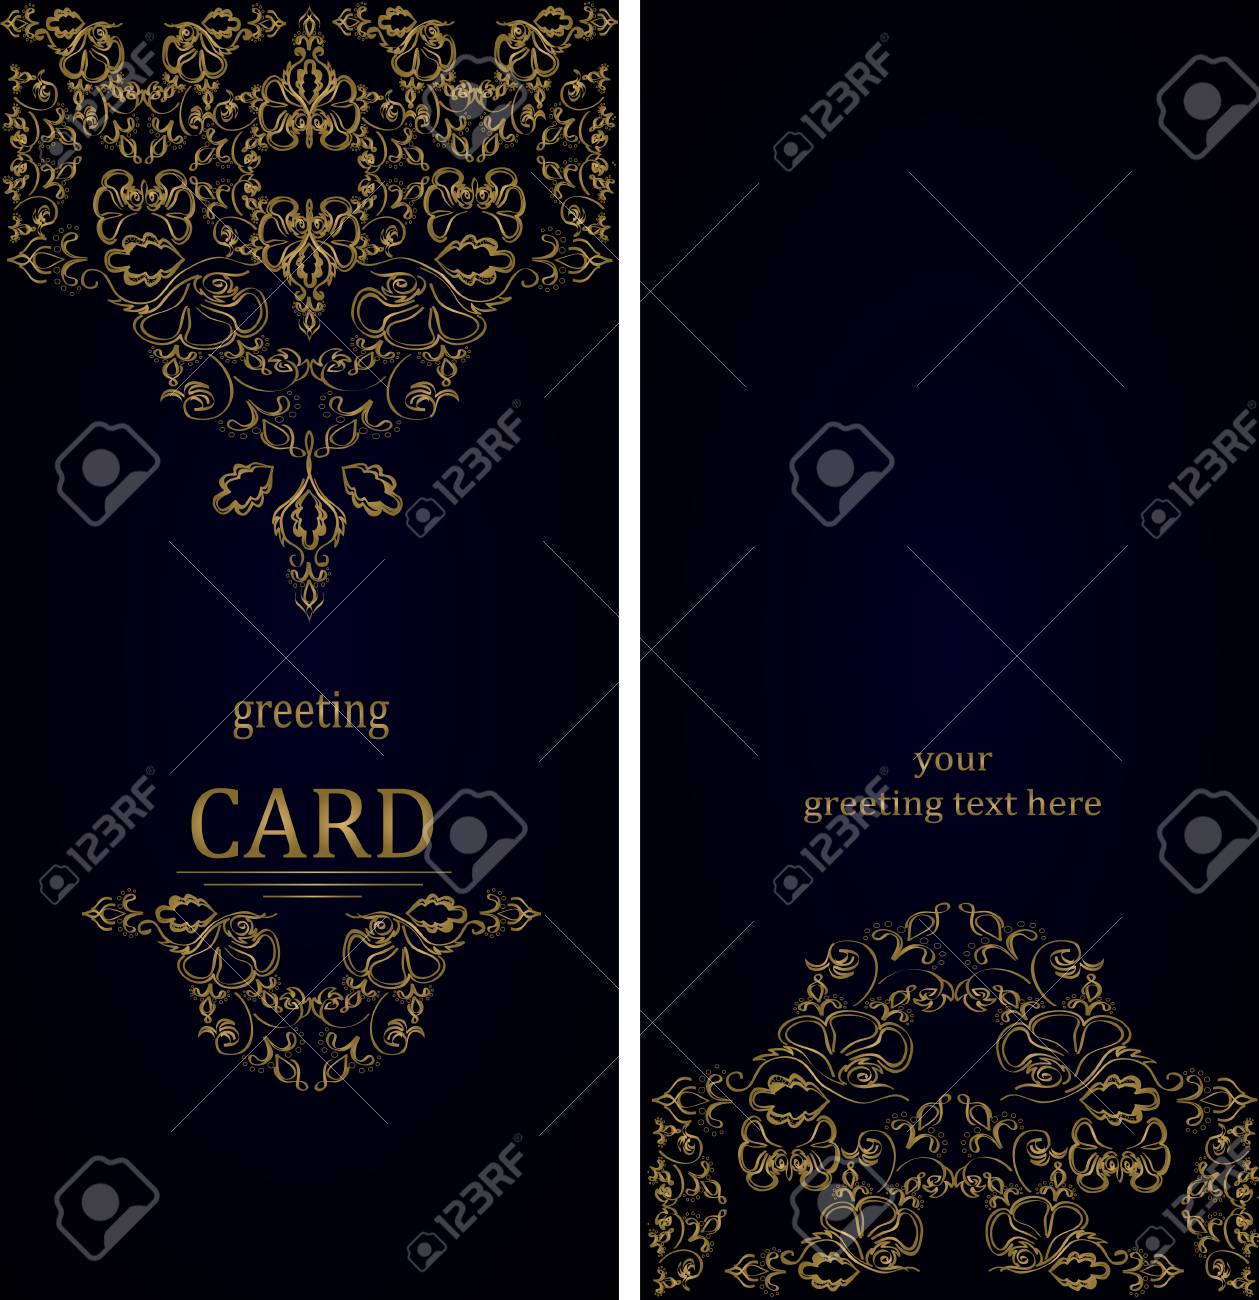 Vintage Greeting Cards In Victorian Style Royalty Free Cliparts